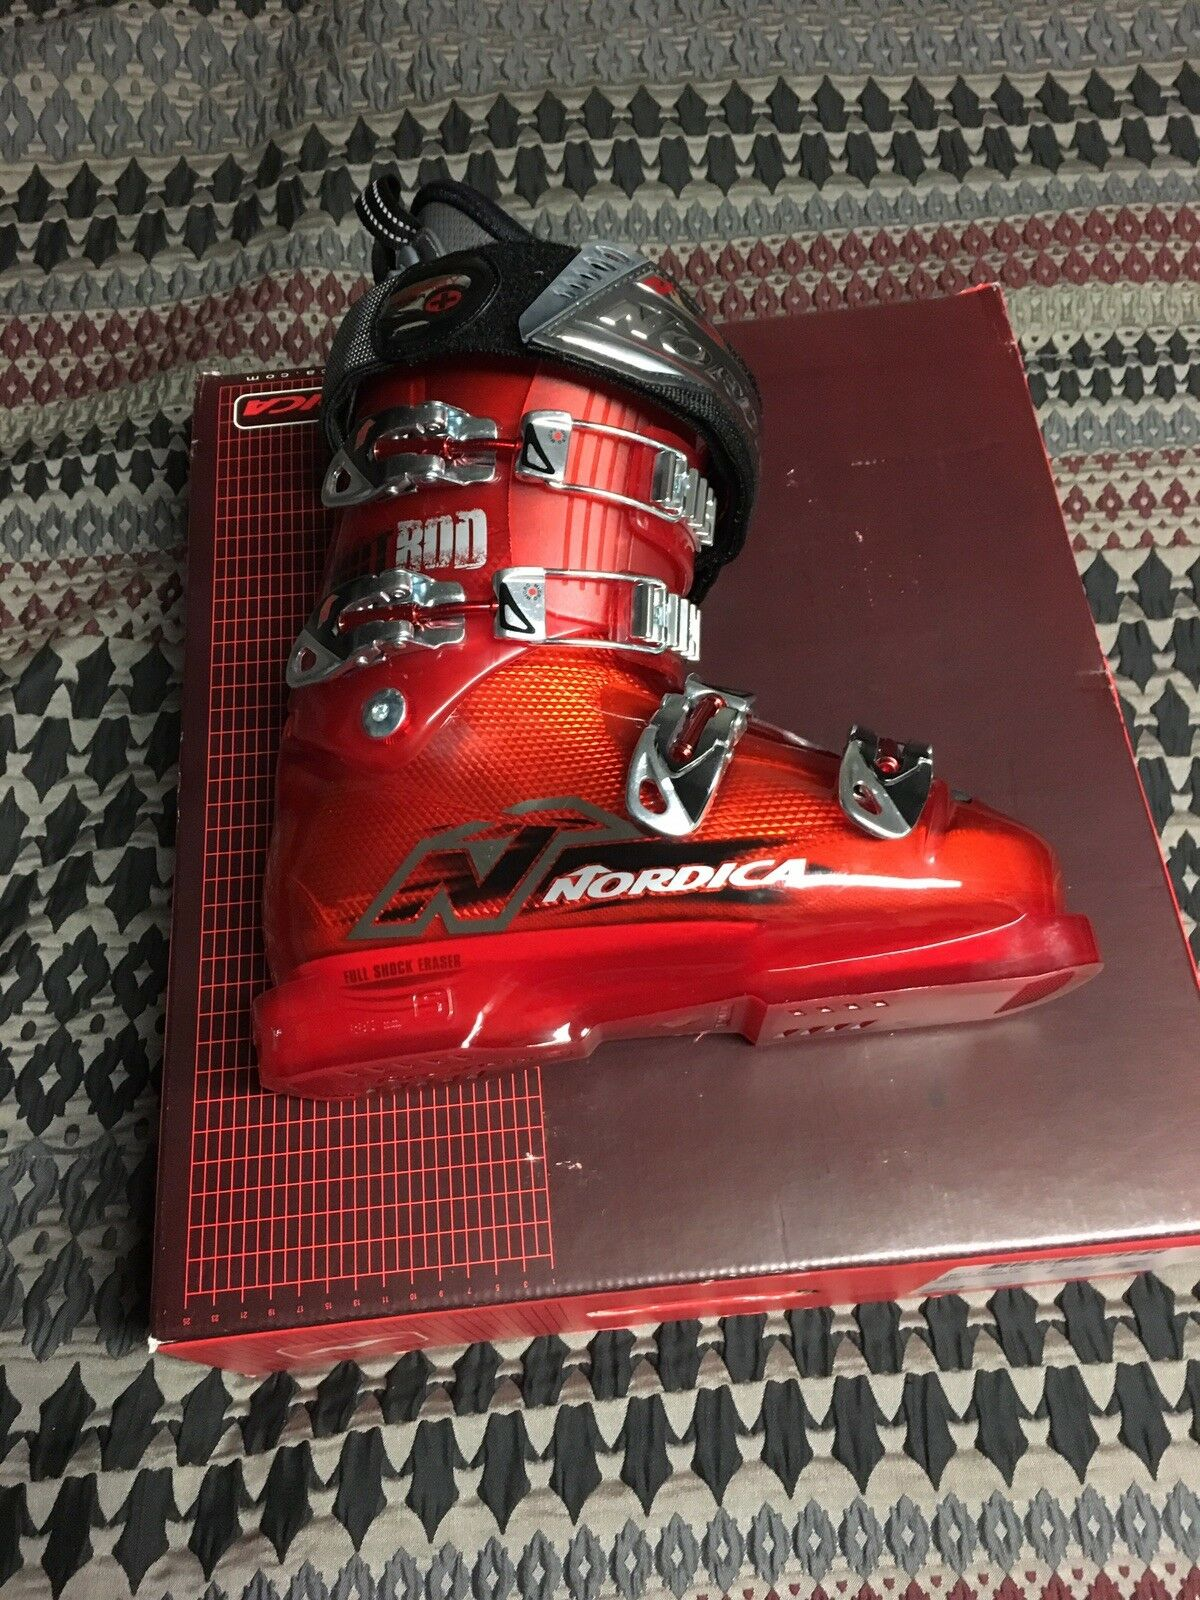 New Nordica Hot Rod Ski Boots Size 24.0 US 6.5 Shell 285mm